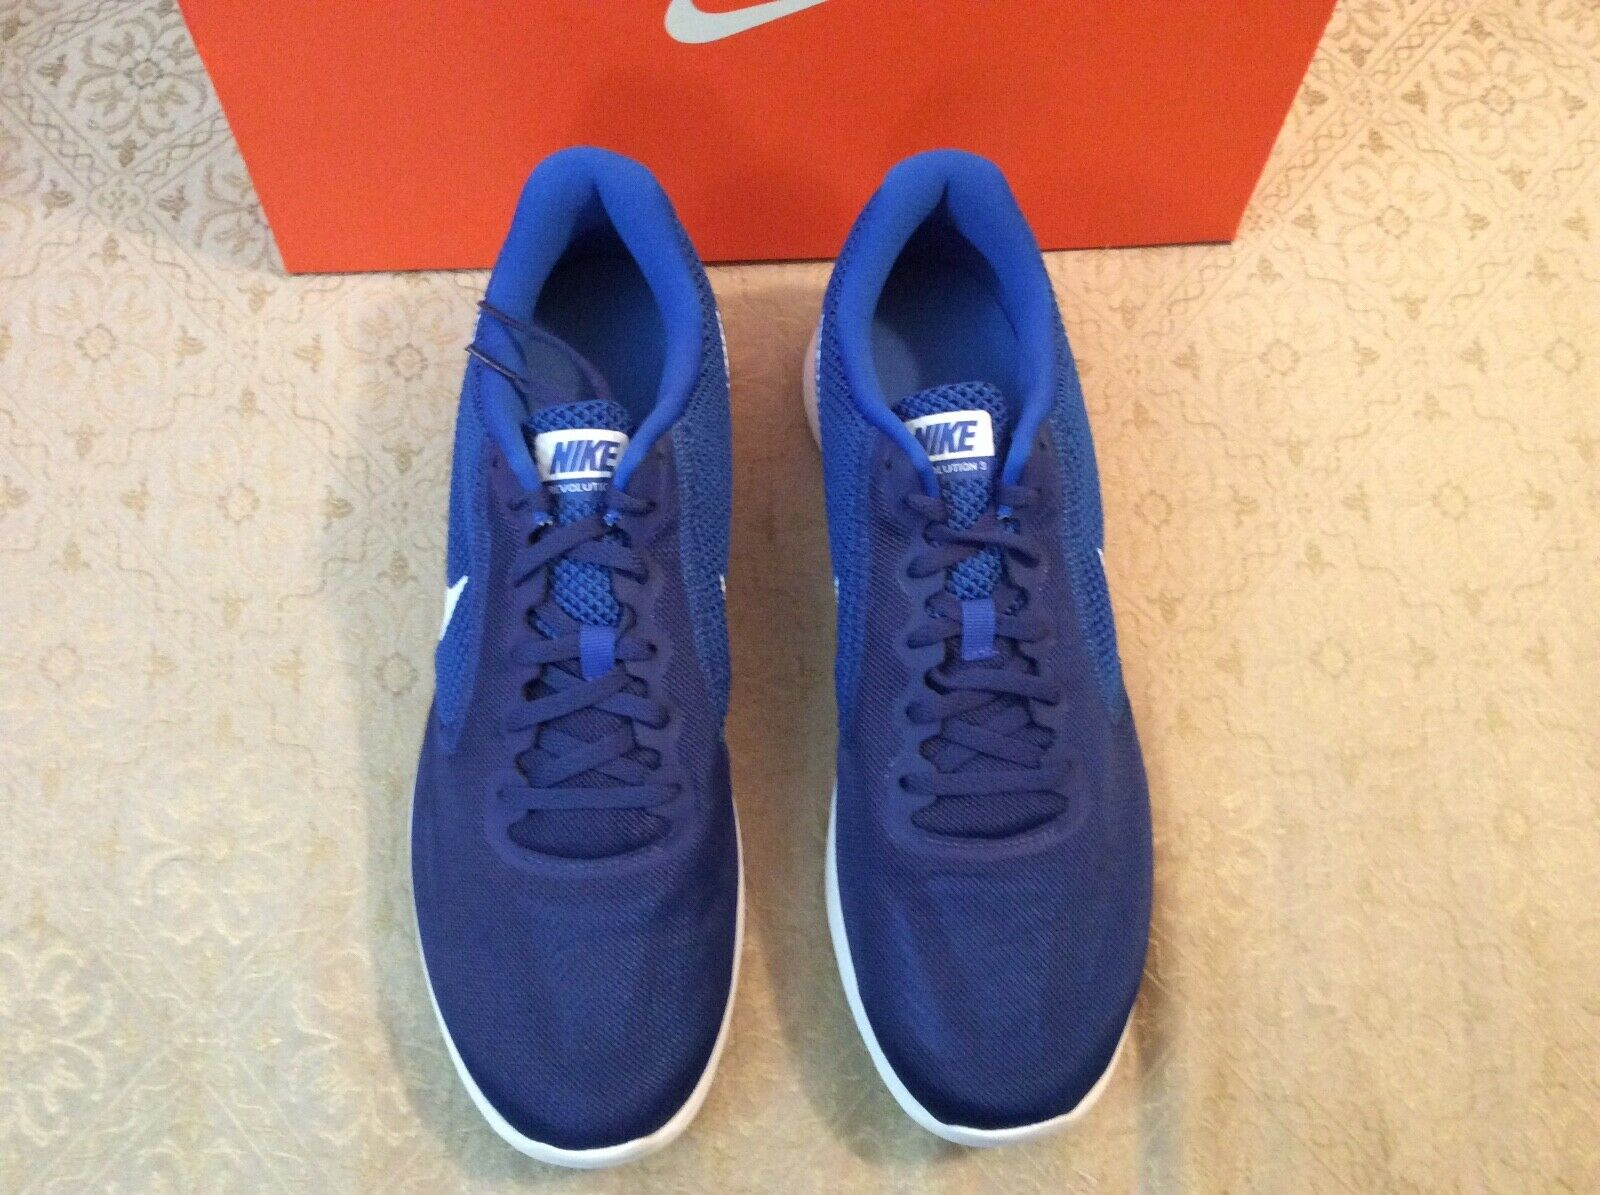 Nike Revolution 3 bluee Men's Athletic Sneakers Size 13